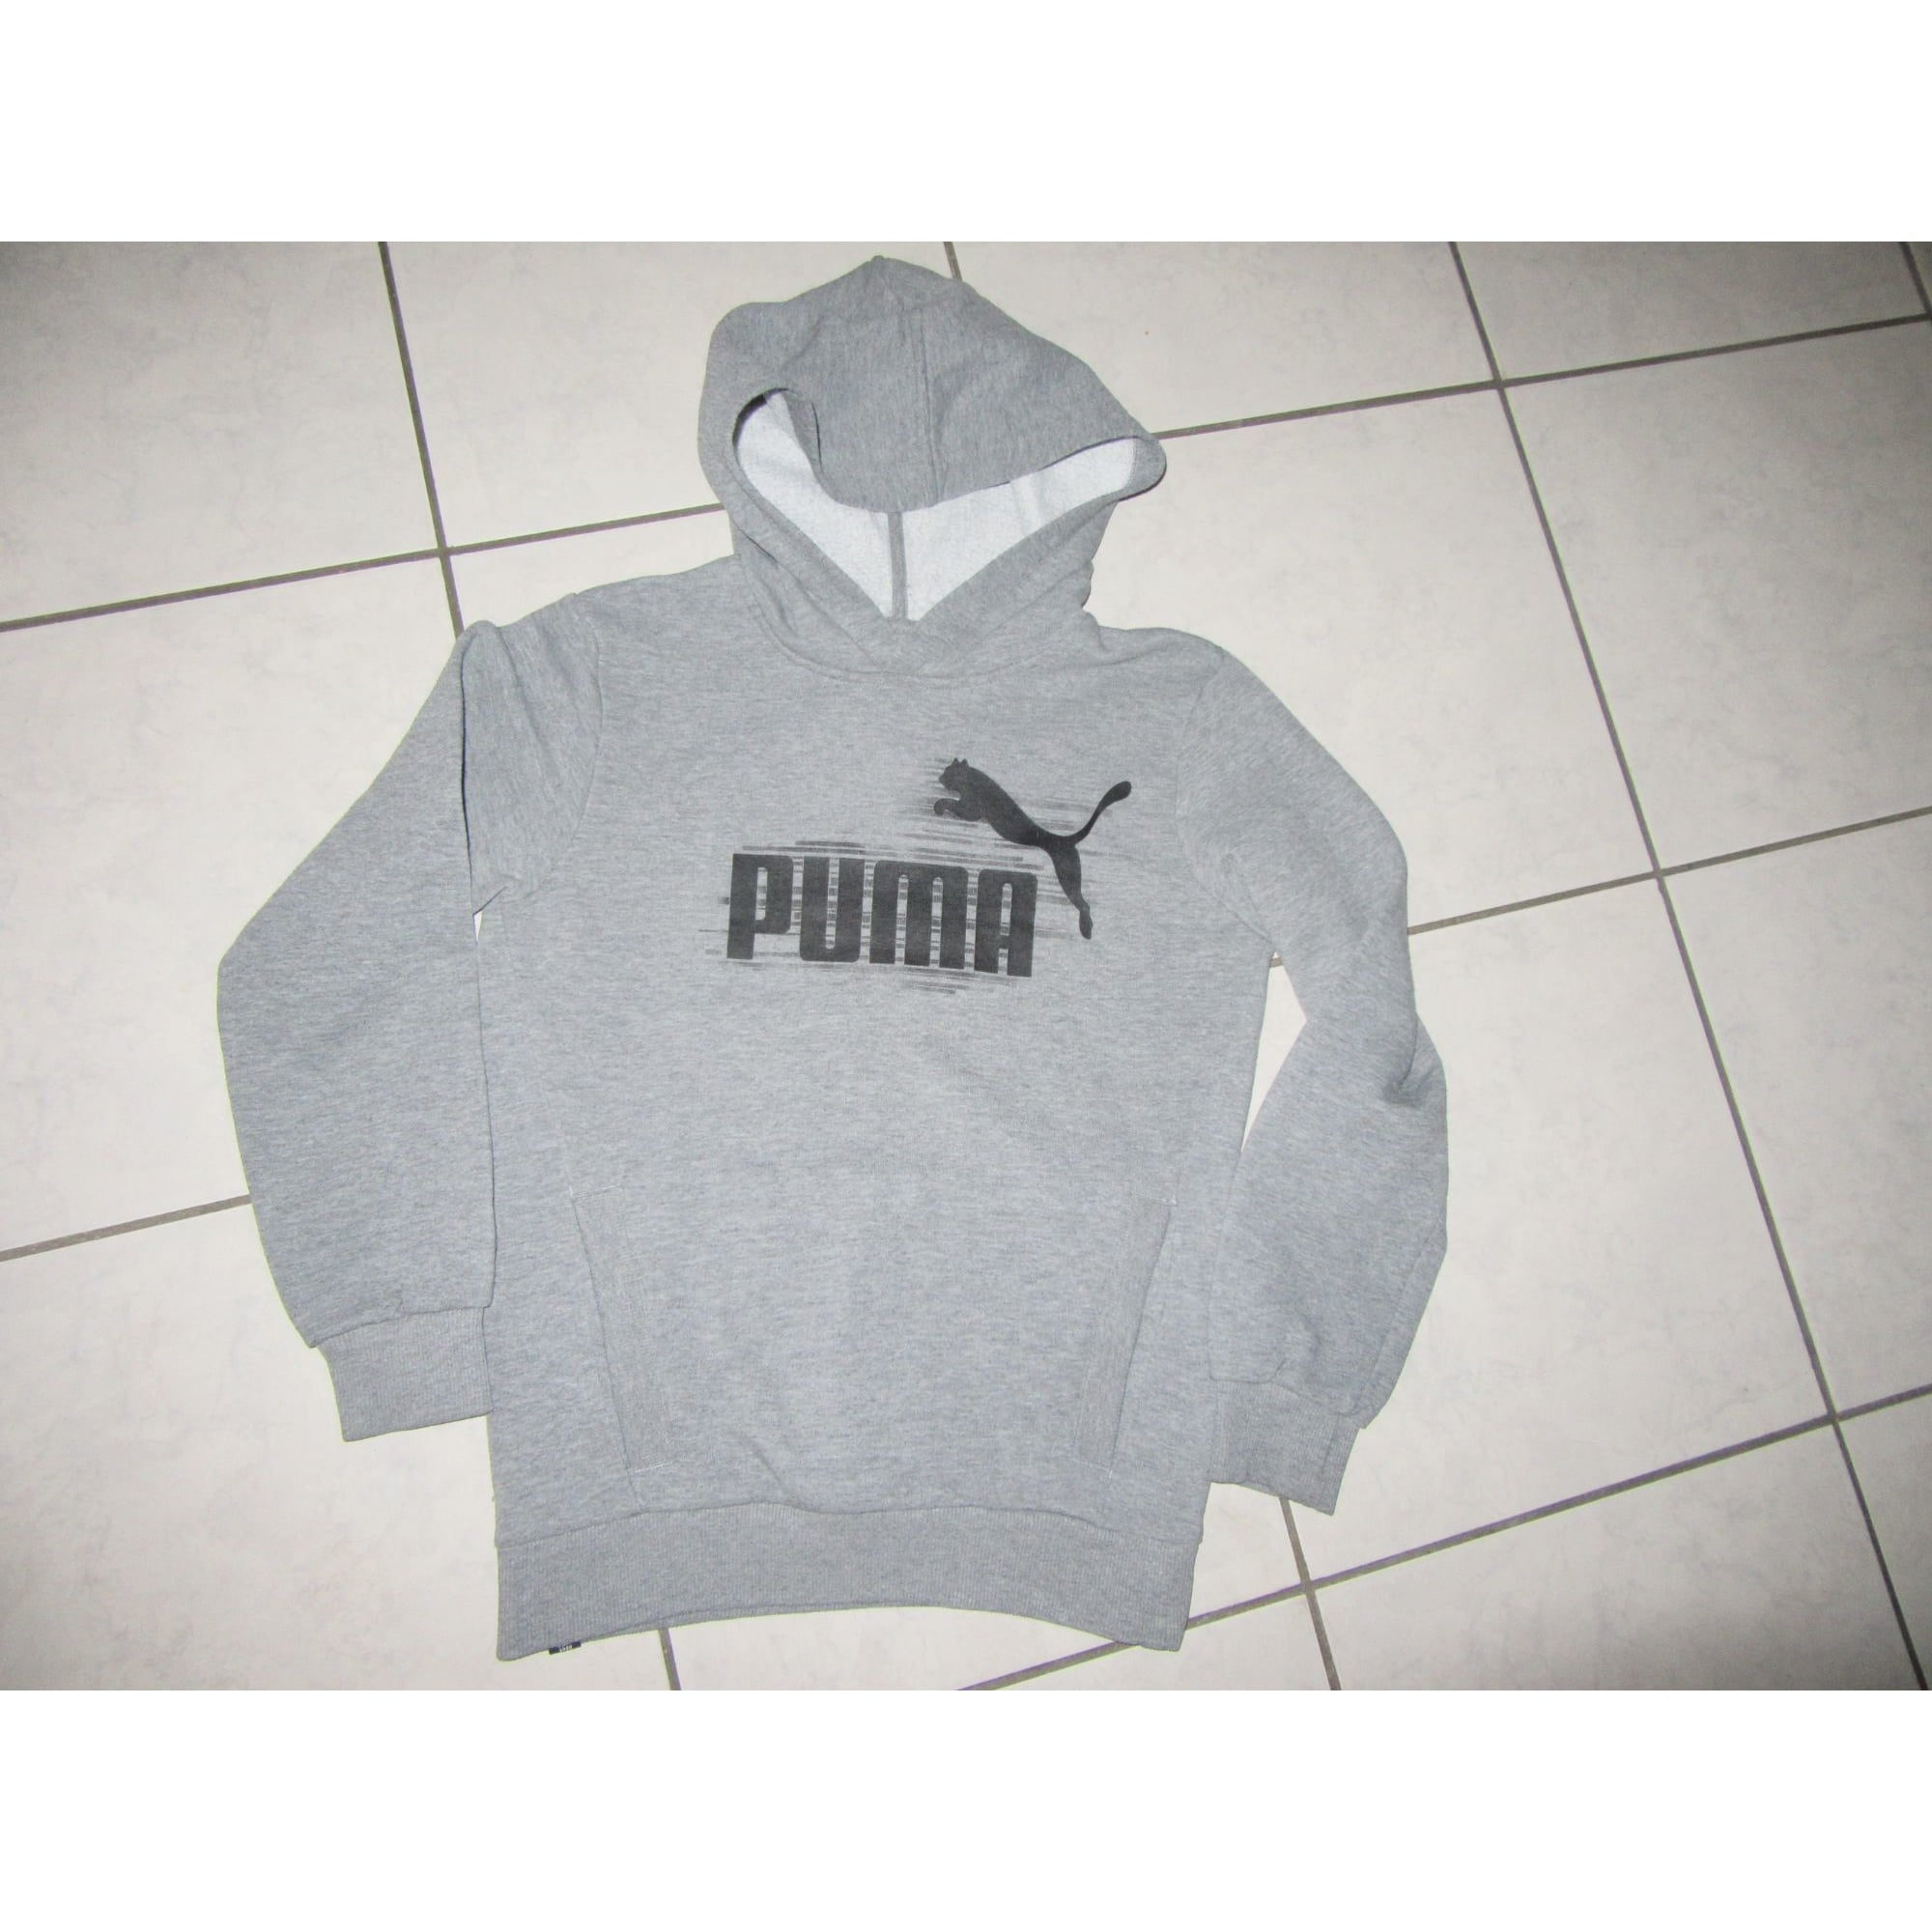 sweat puma 12 ans OFF 57% - Online Shopping Site for Fashion ...